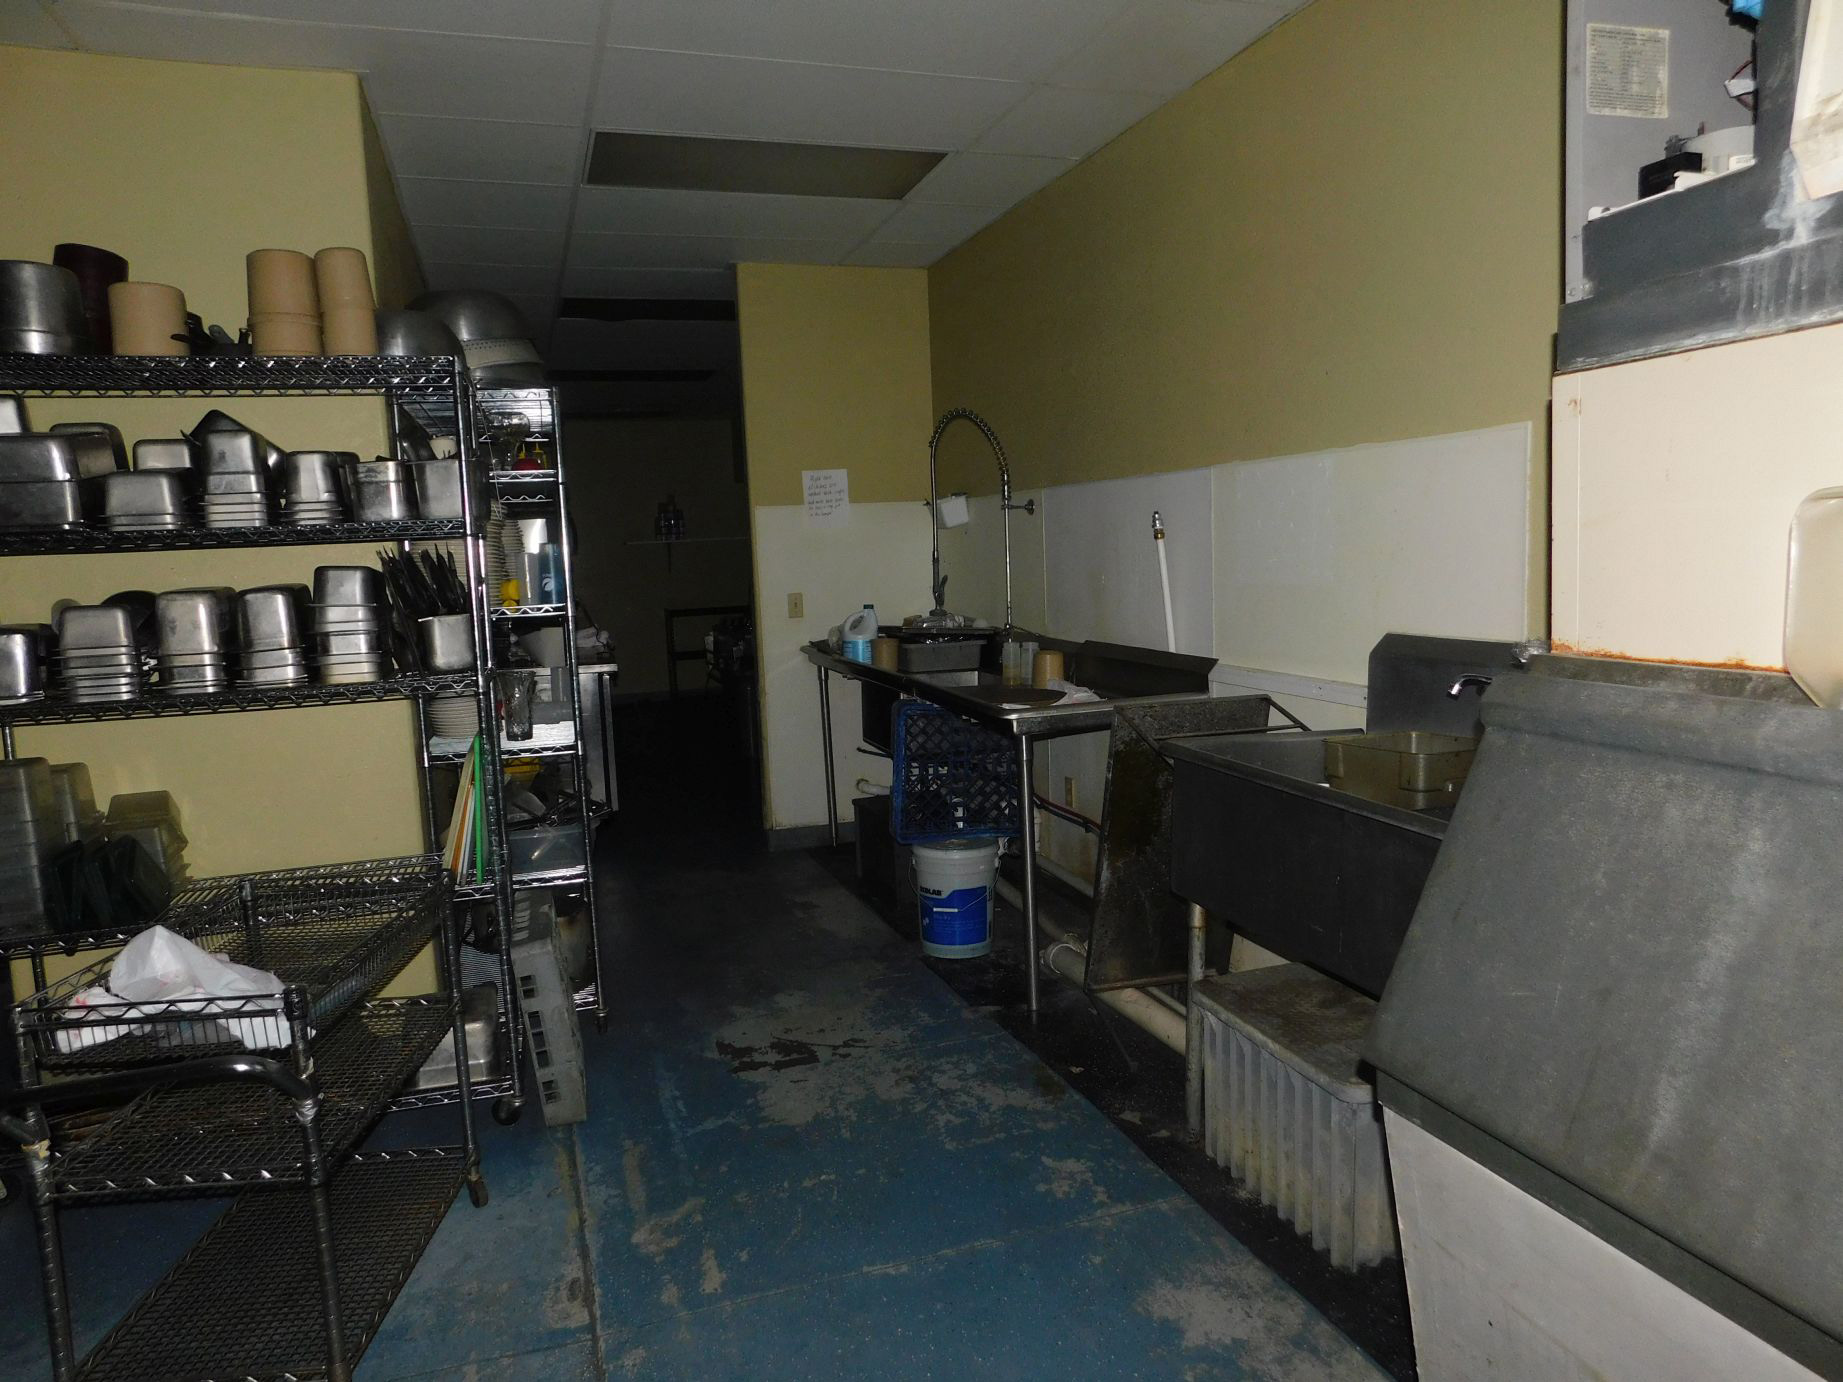 Parcel-3-kitchen-area-(5).jpg